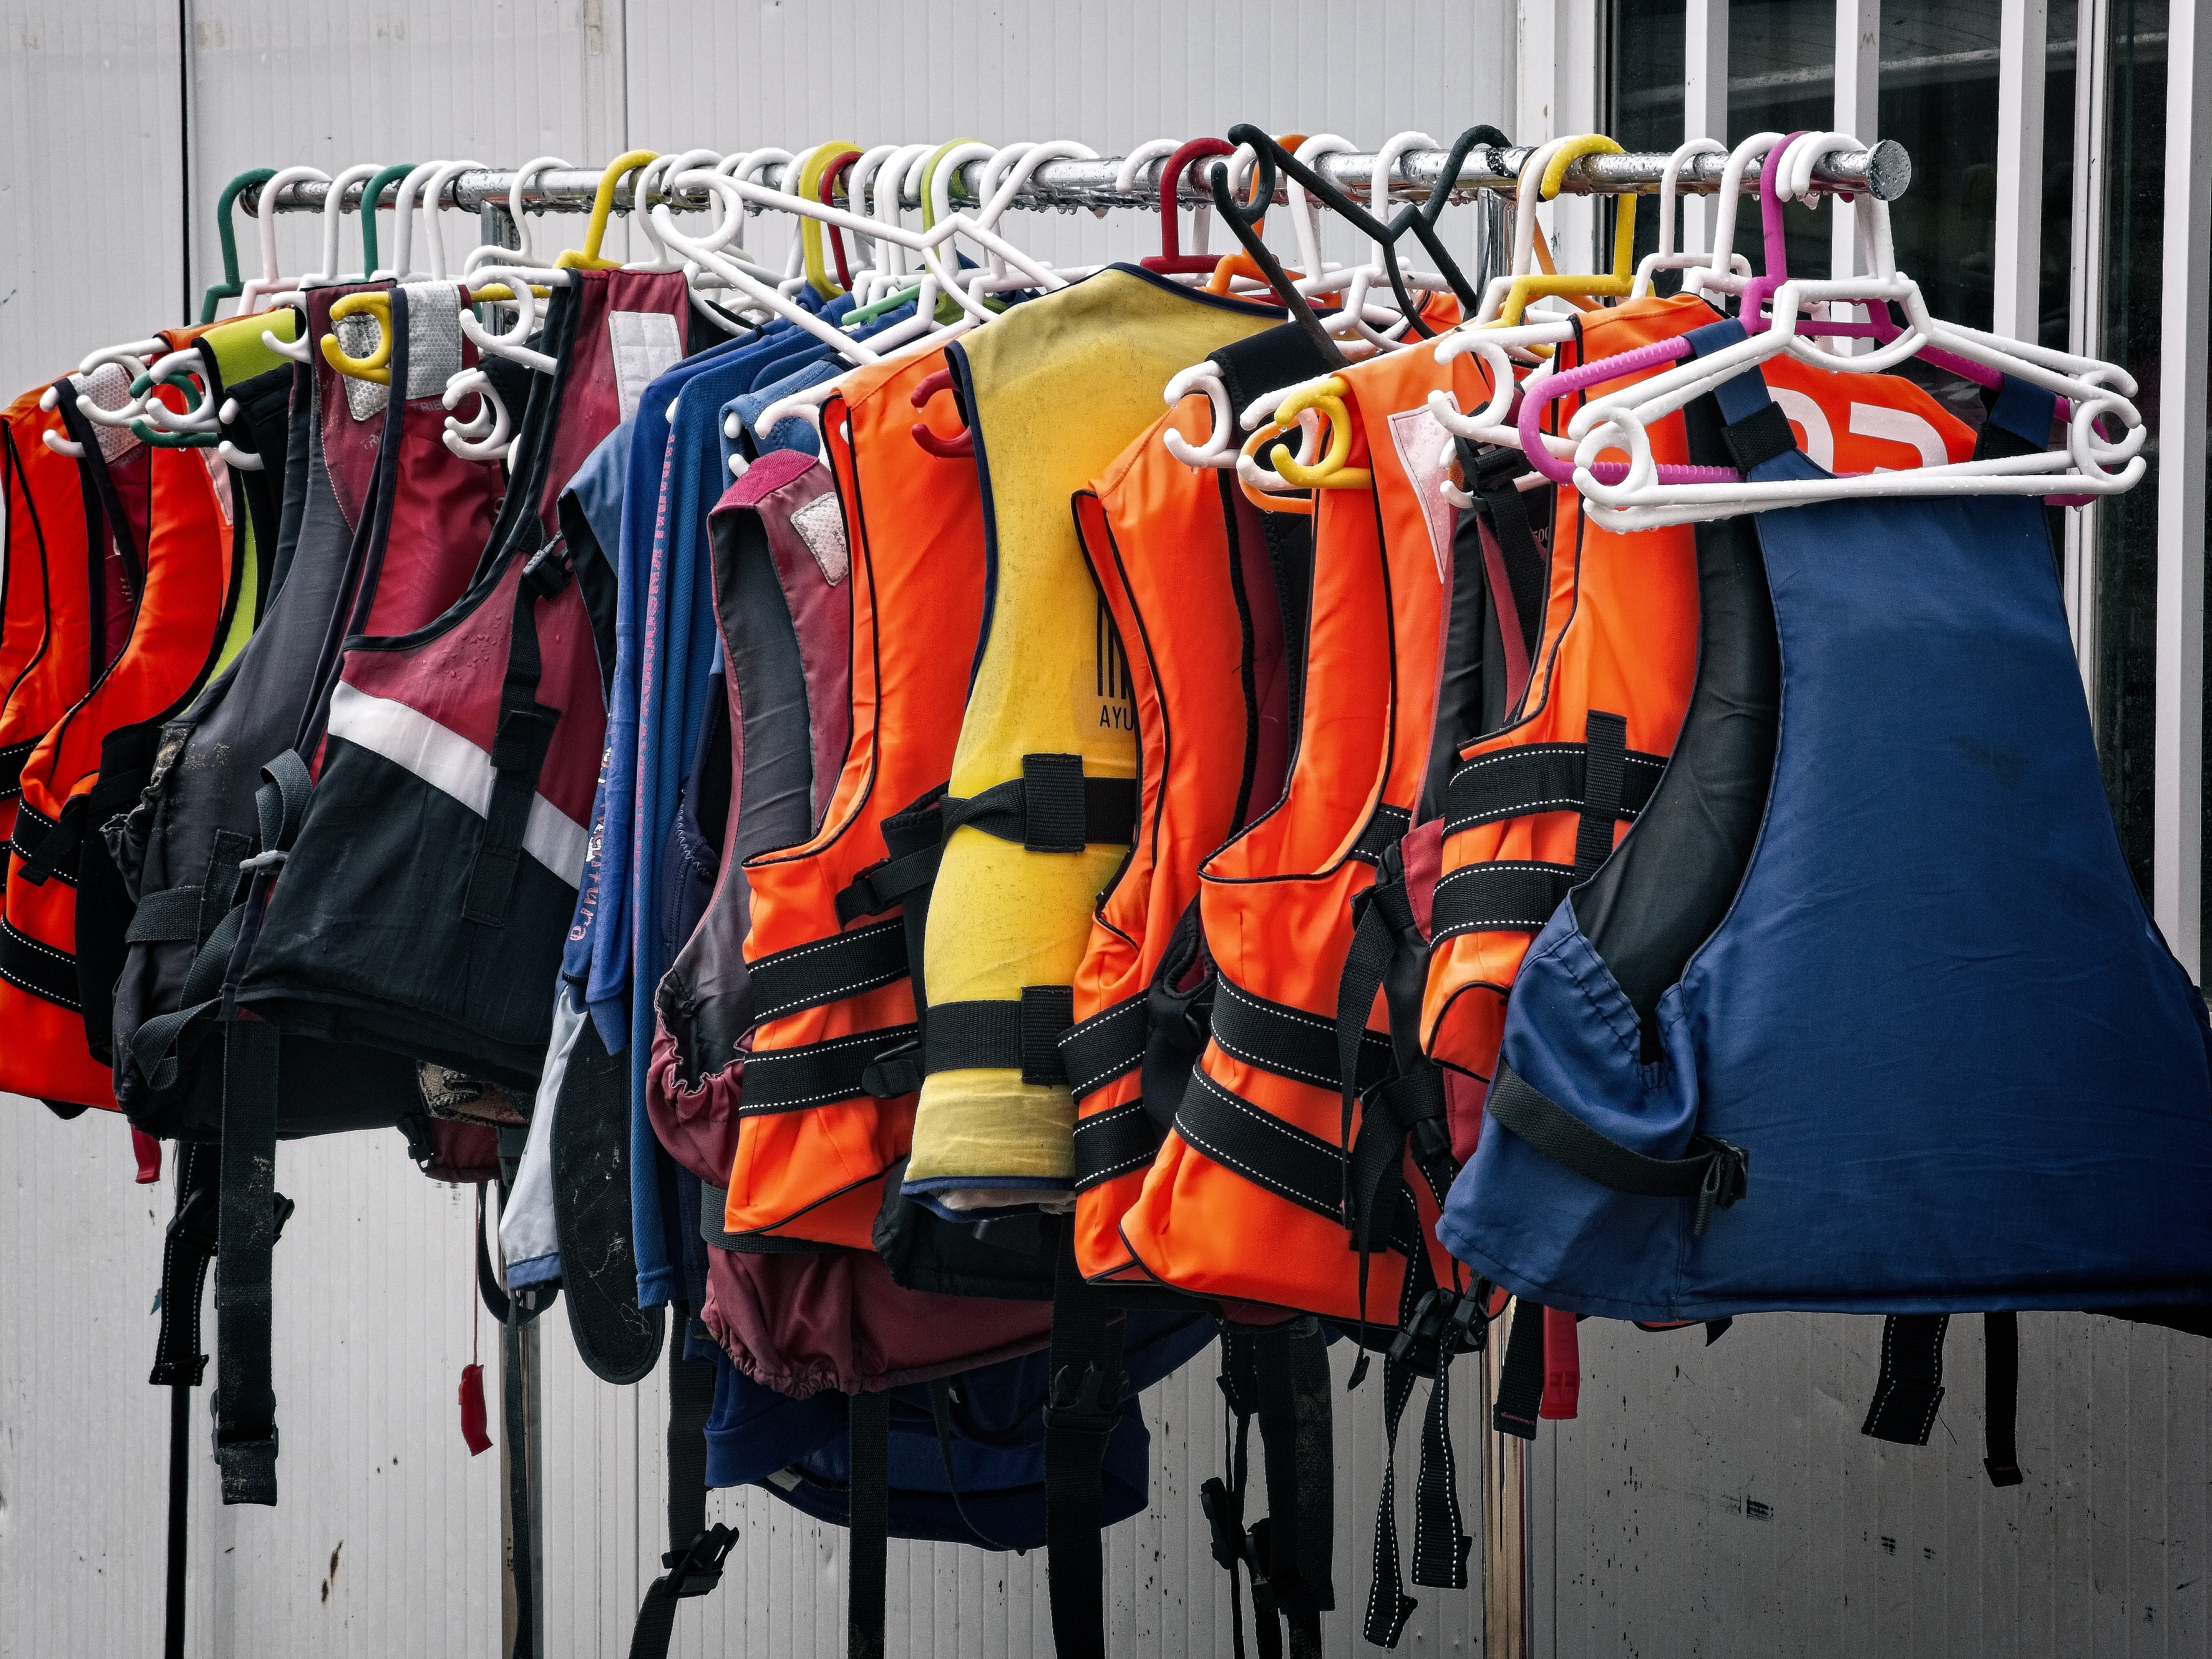 Life vests are important for safety!